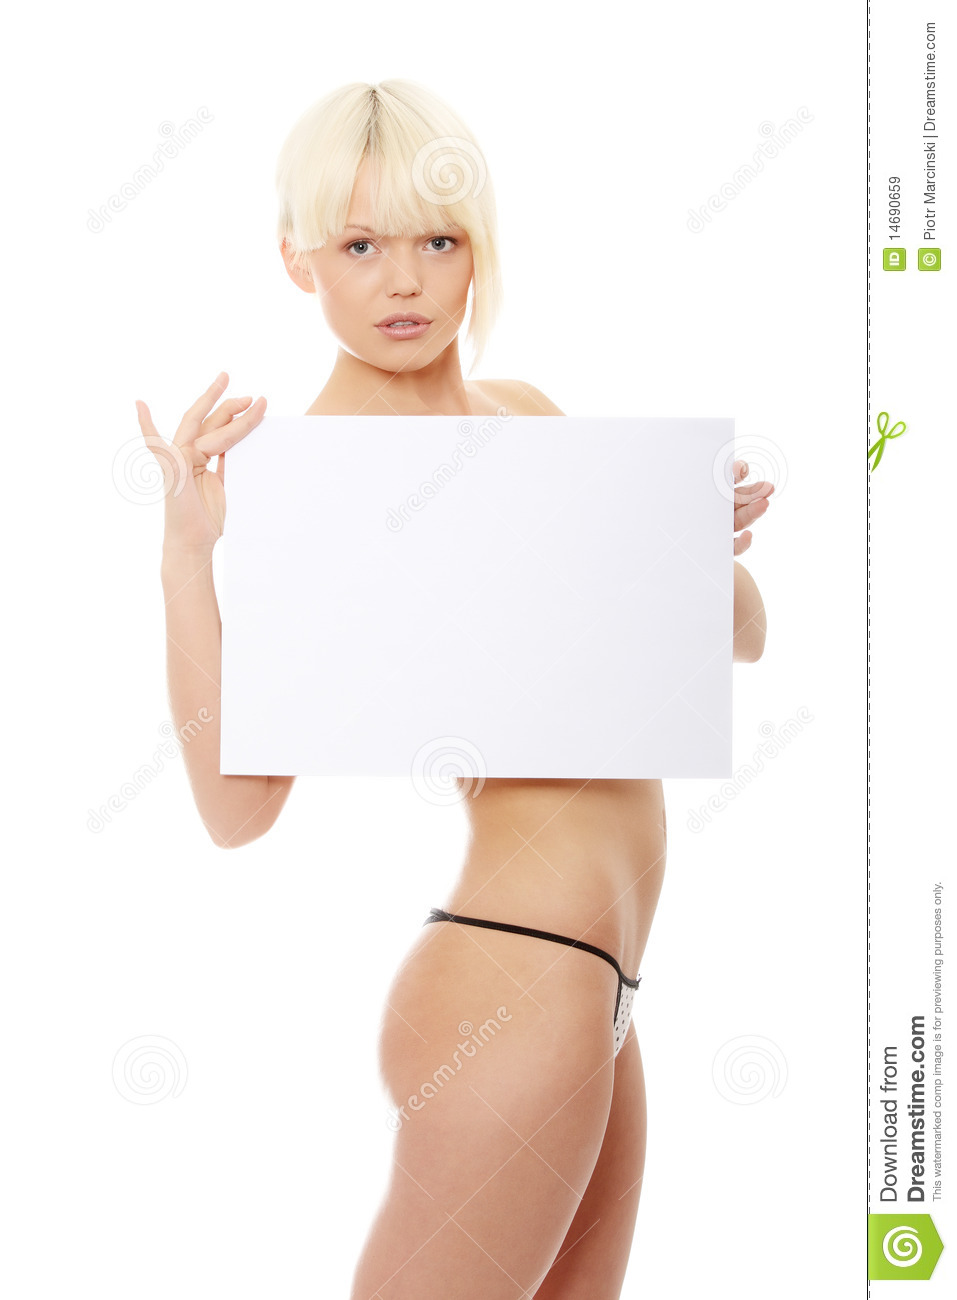 Naked women holding sign